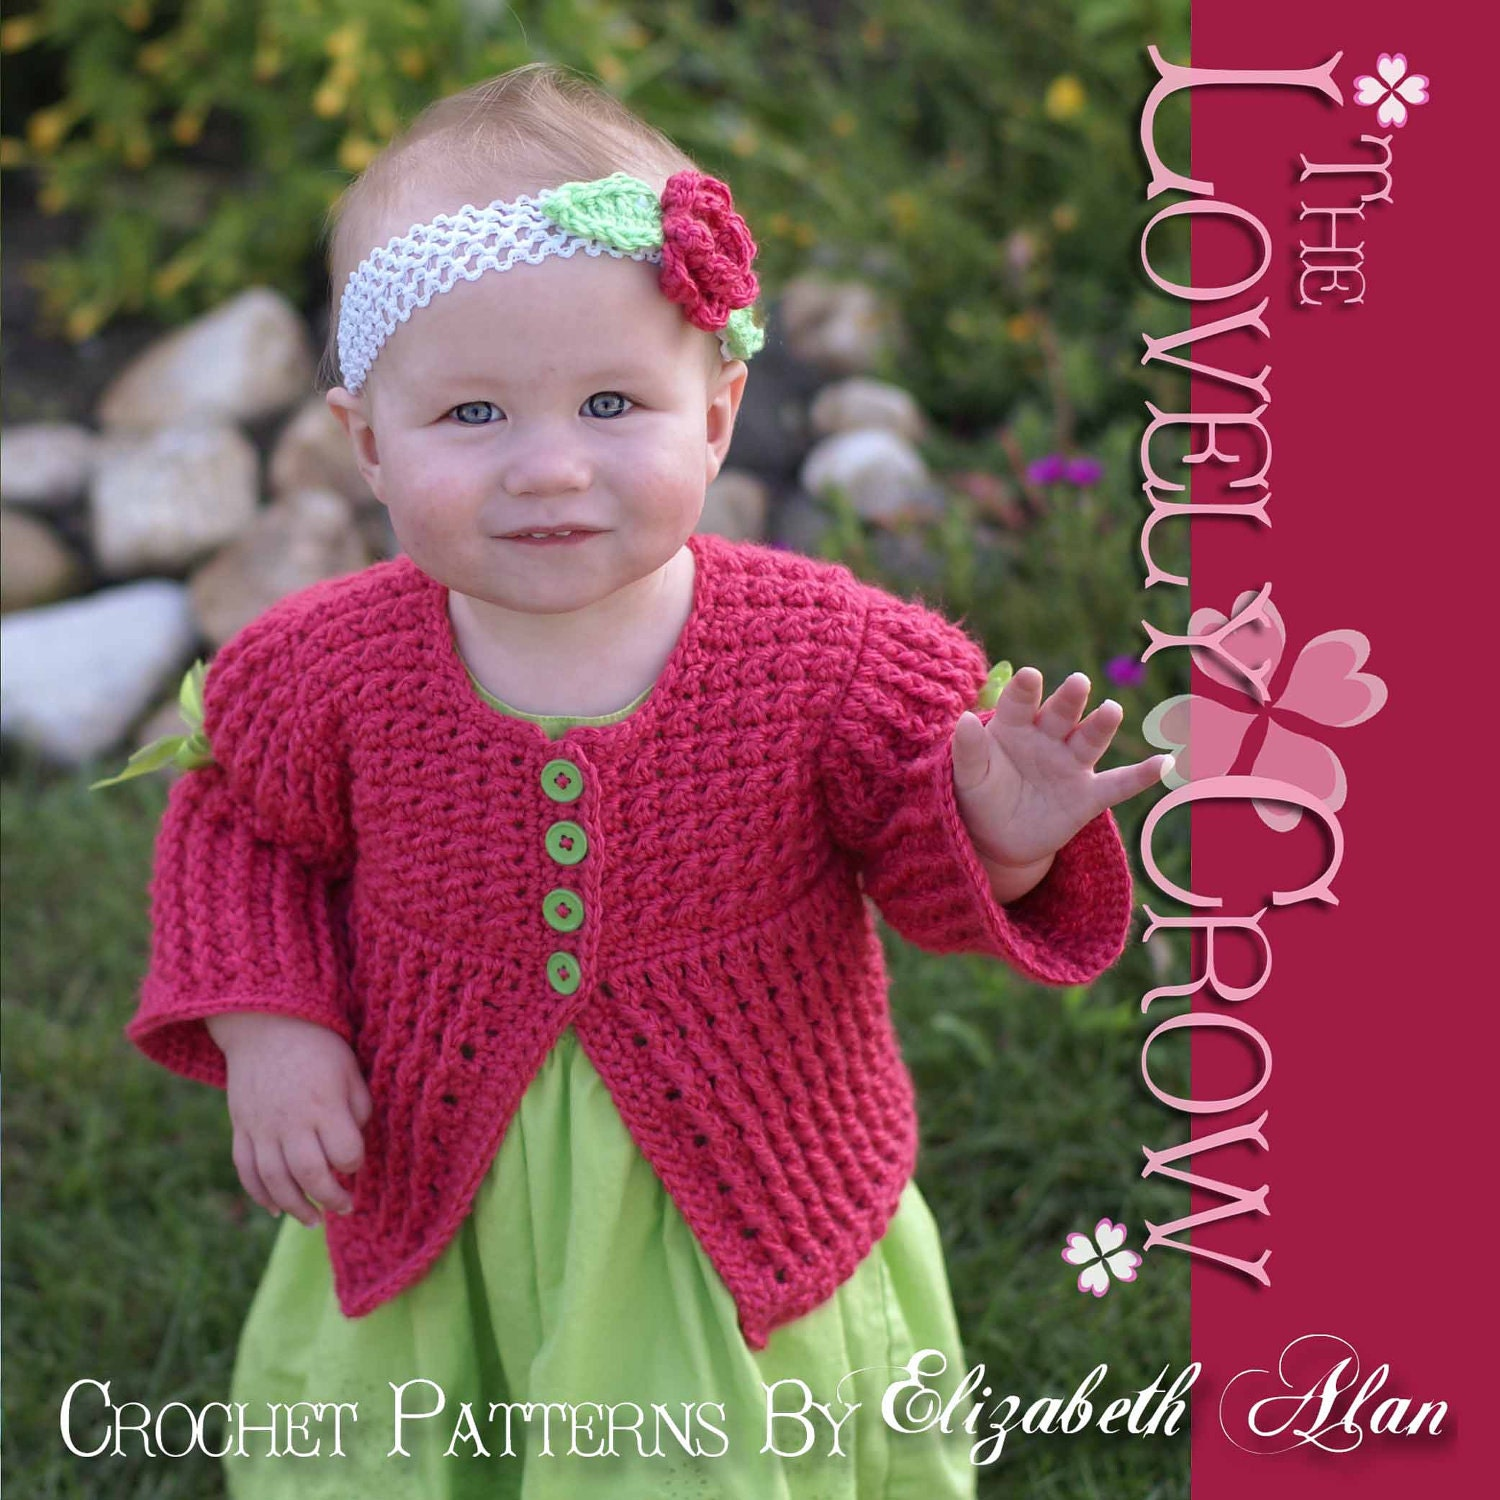 Crochet Child Cardigan Pattern : Crochet Patterns Baby Sweater